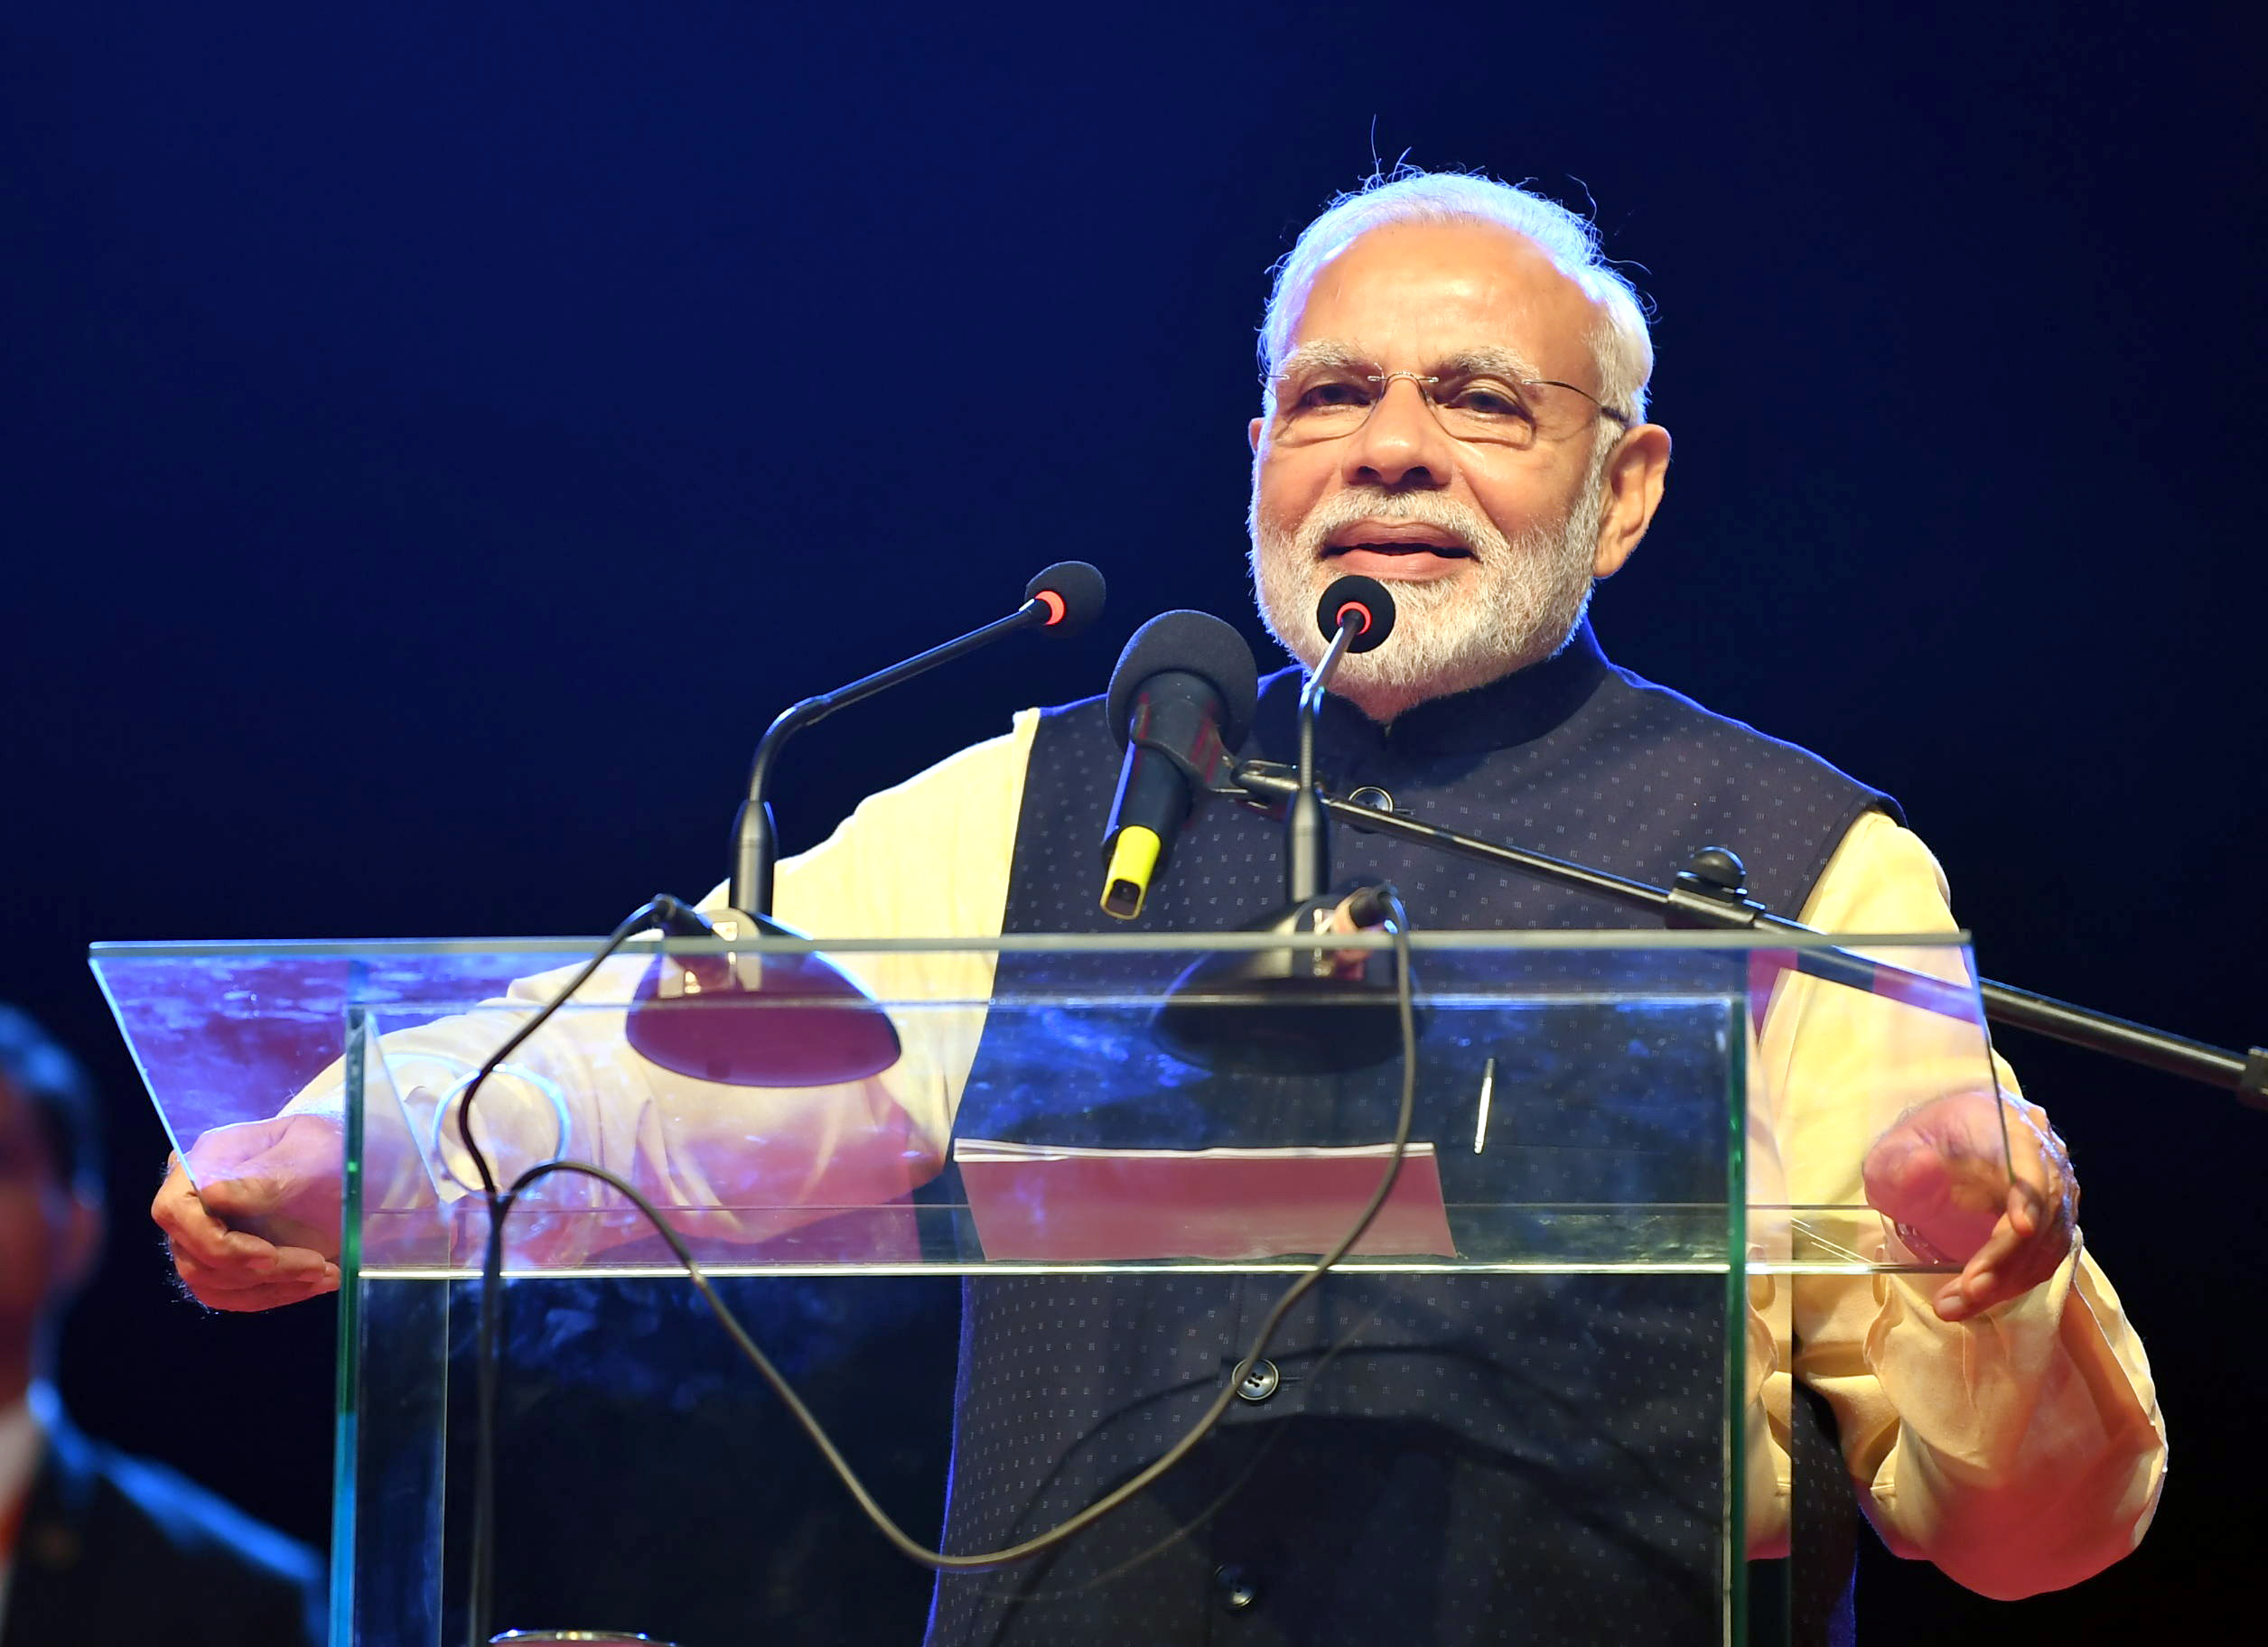 PM Modi says India is emerge as a global manufacturing and start-up hub